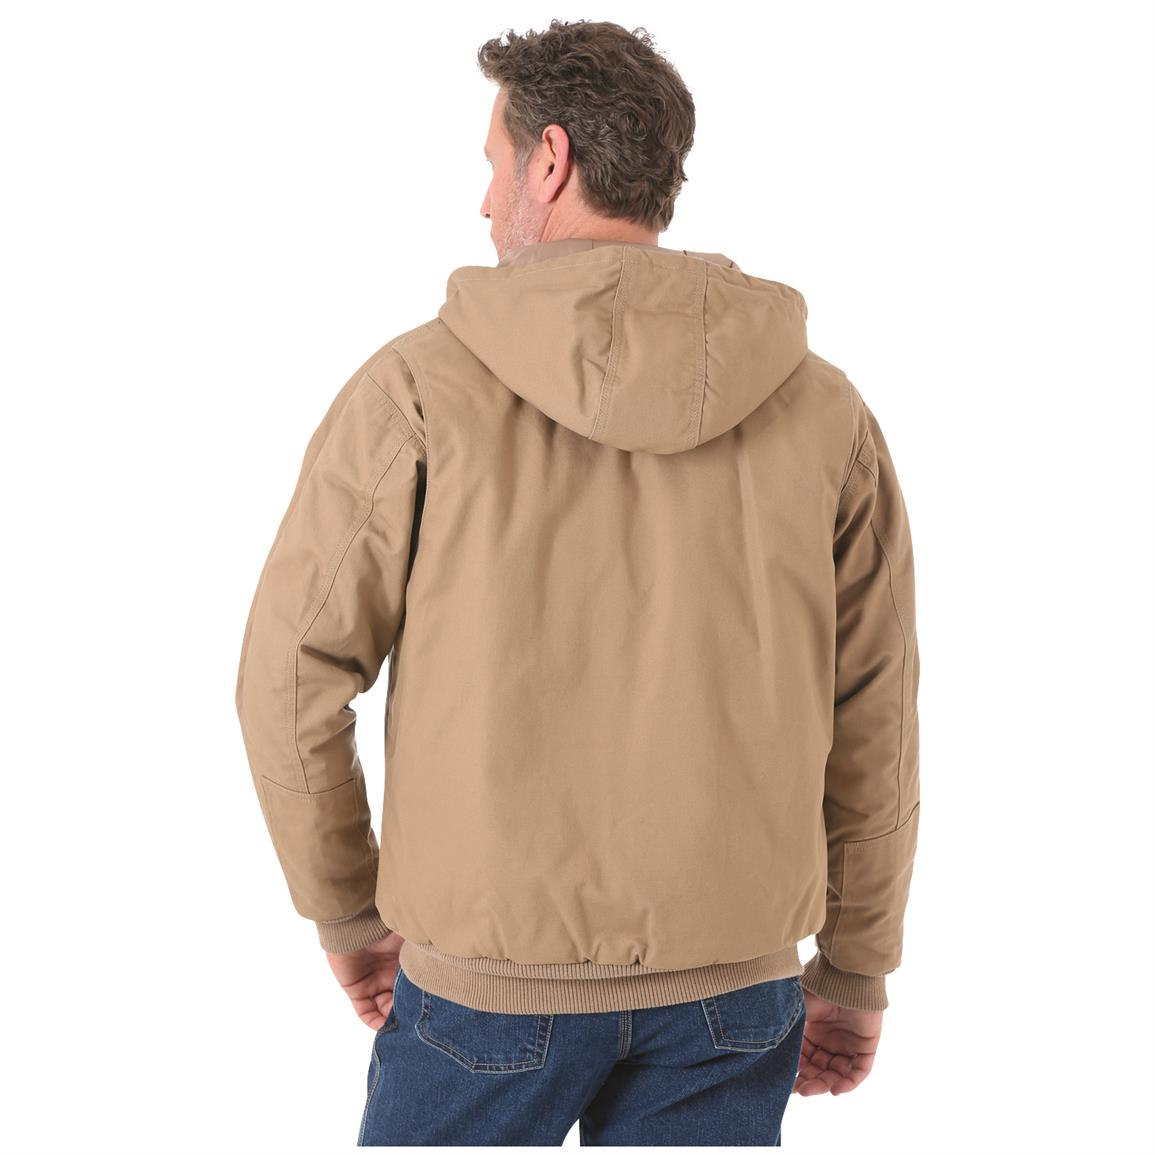 Wrangler RIGGS Workwear Men's Utility Jacket, Rear View